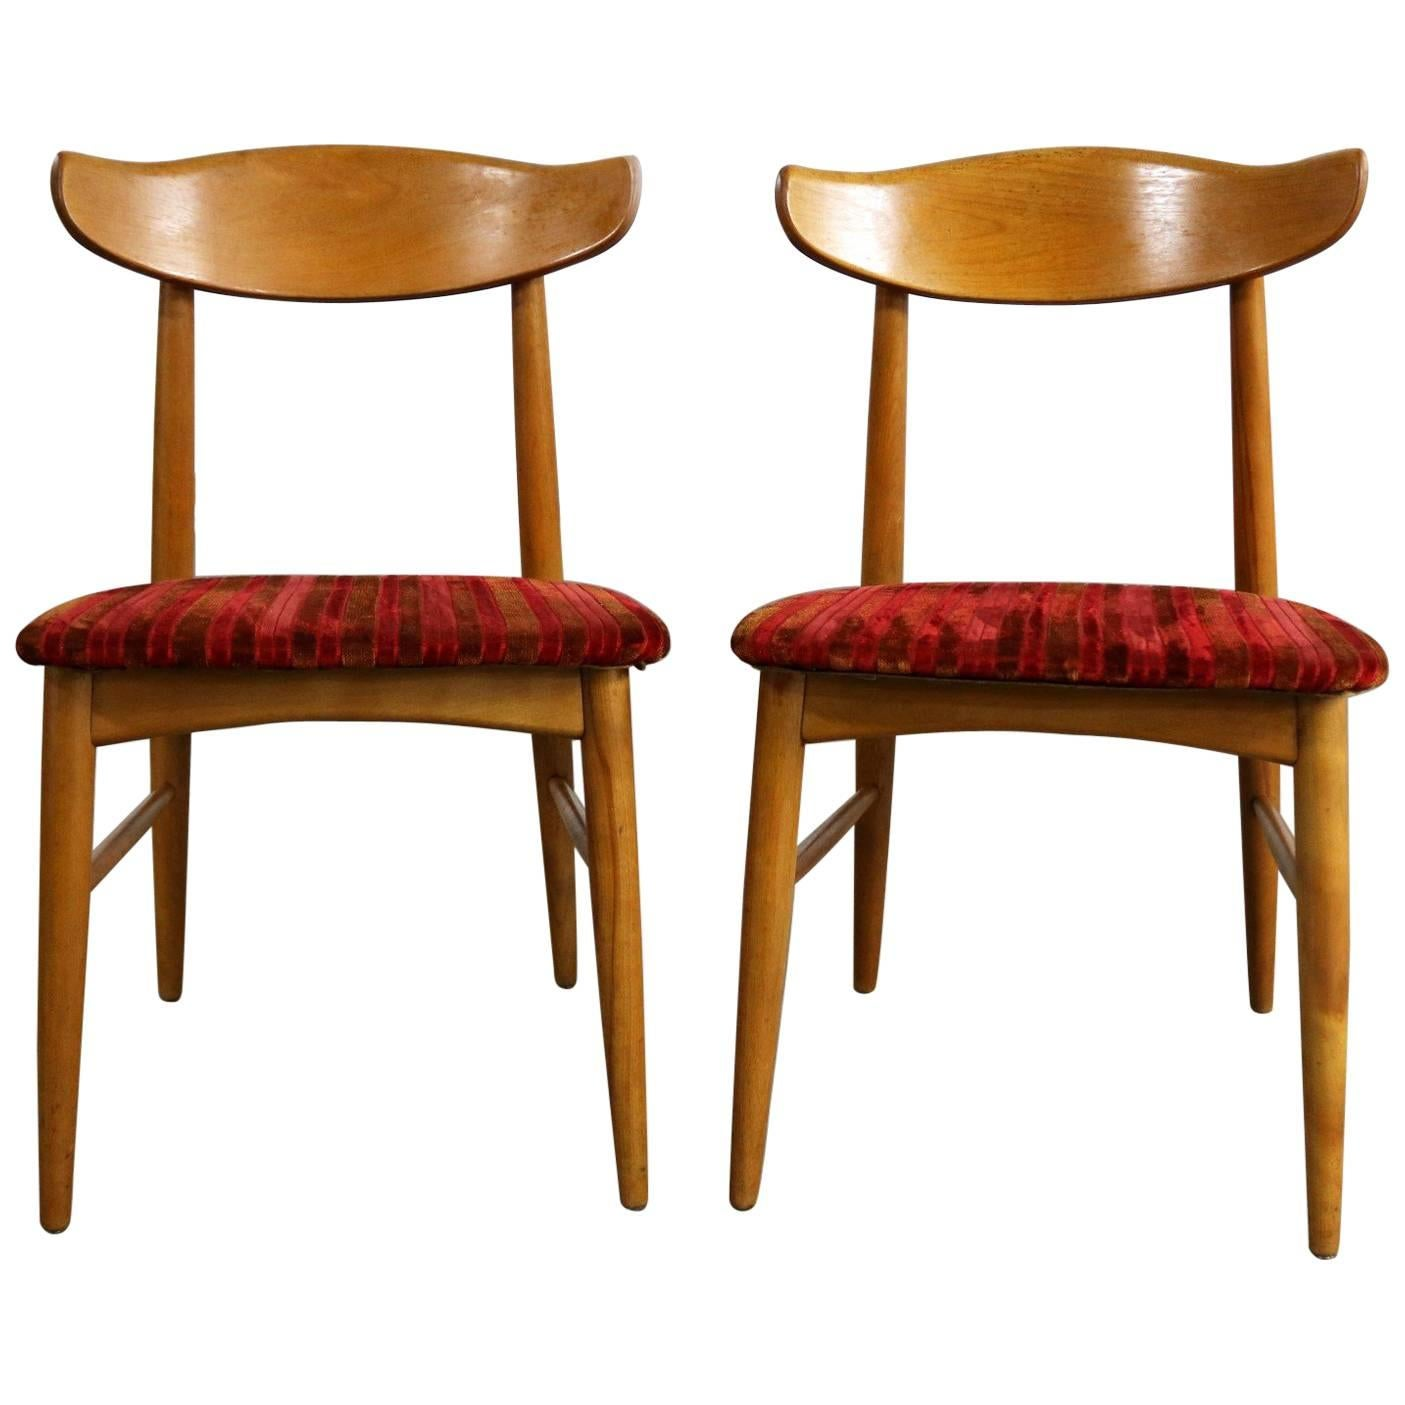 Charmant Pair Of Mid Century Modern Birchcraft Danish Style Side Chairs By Baumritter